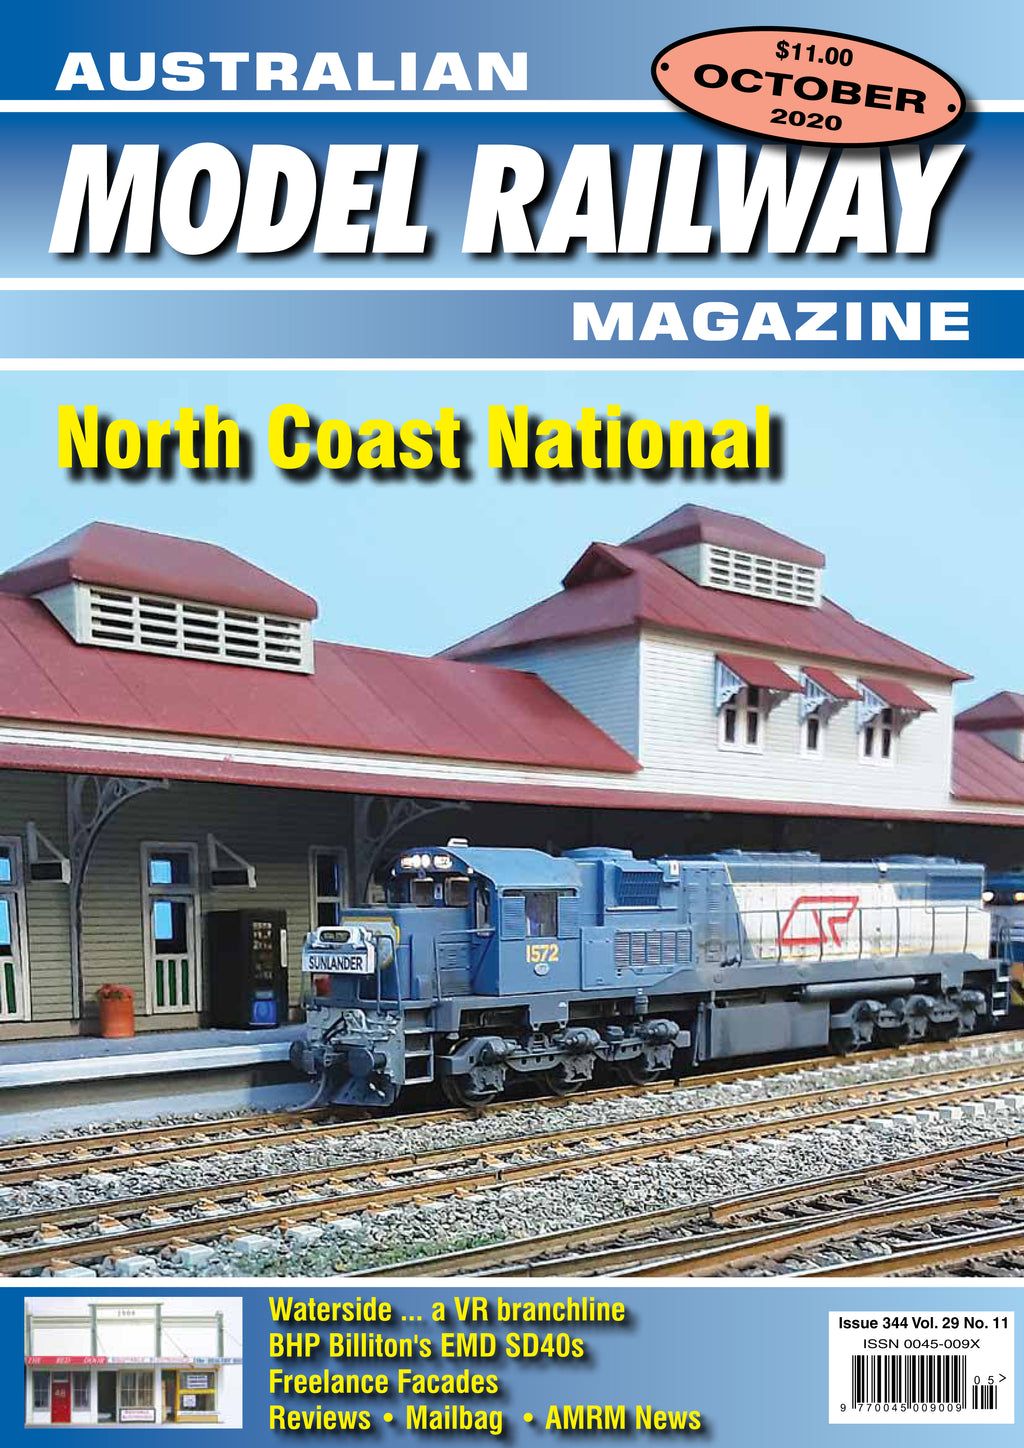 AMRM OCT 2020  Australian Model Railway Magazine